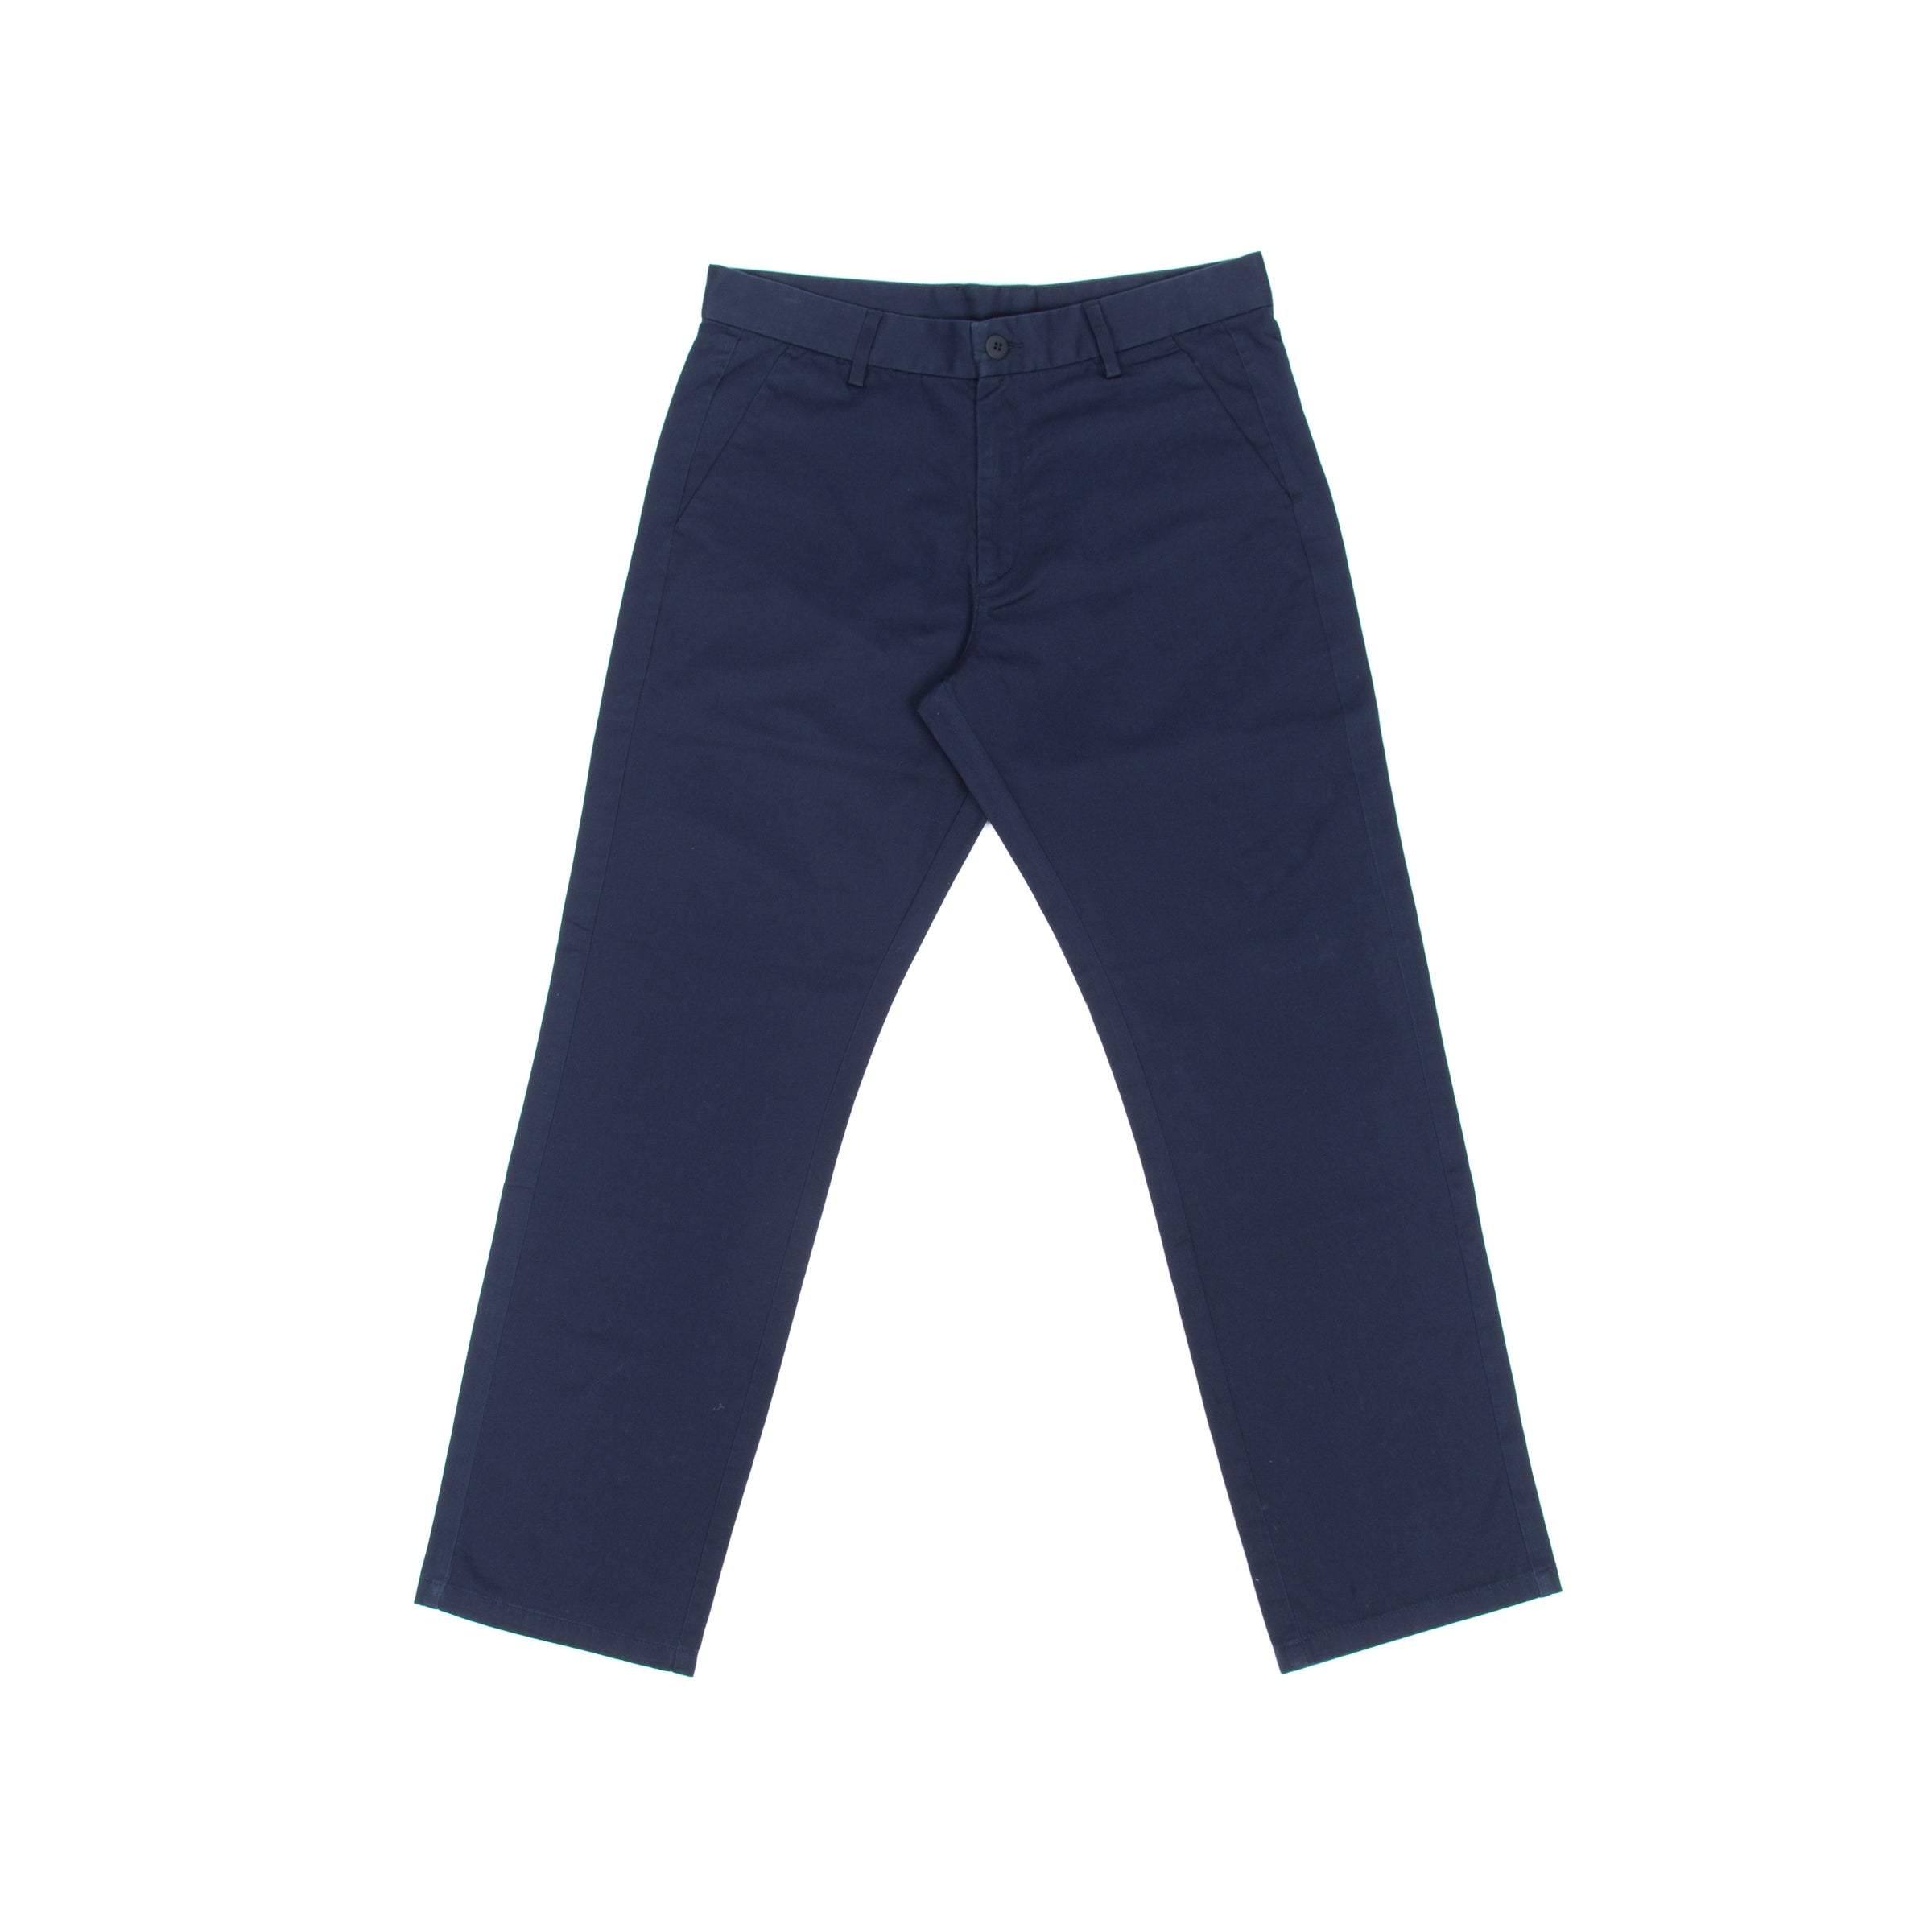 Combo Trousers - Navy